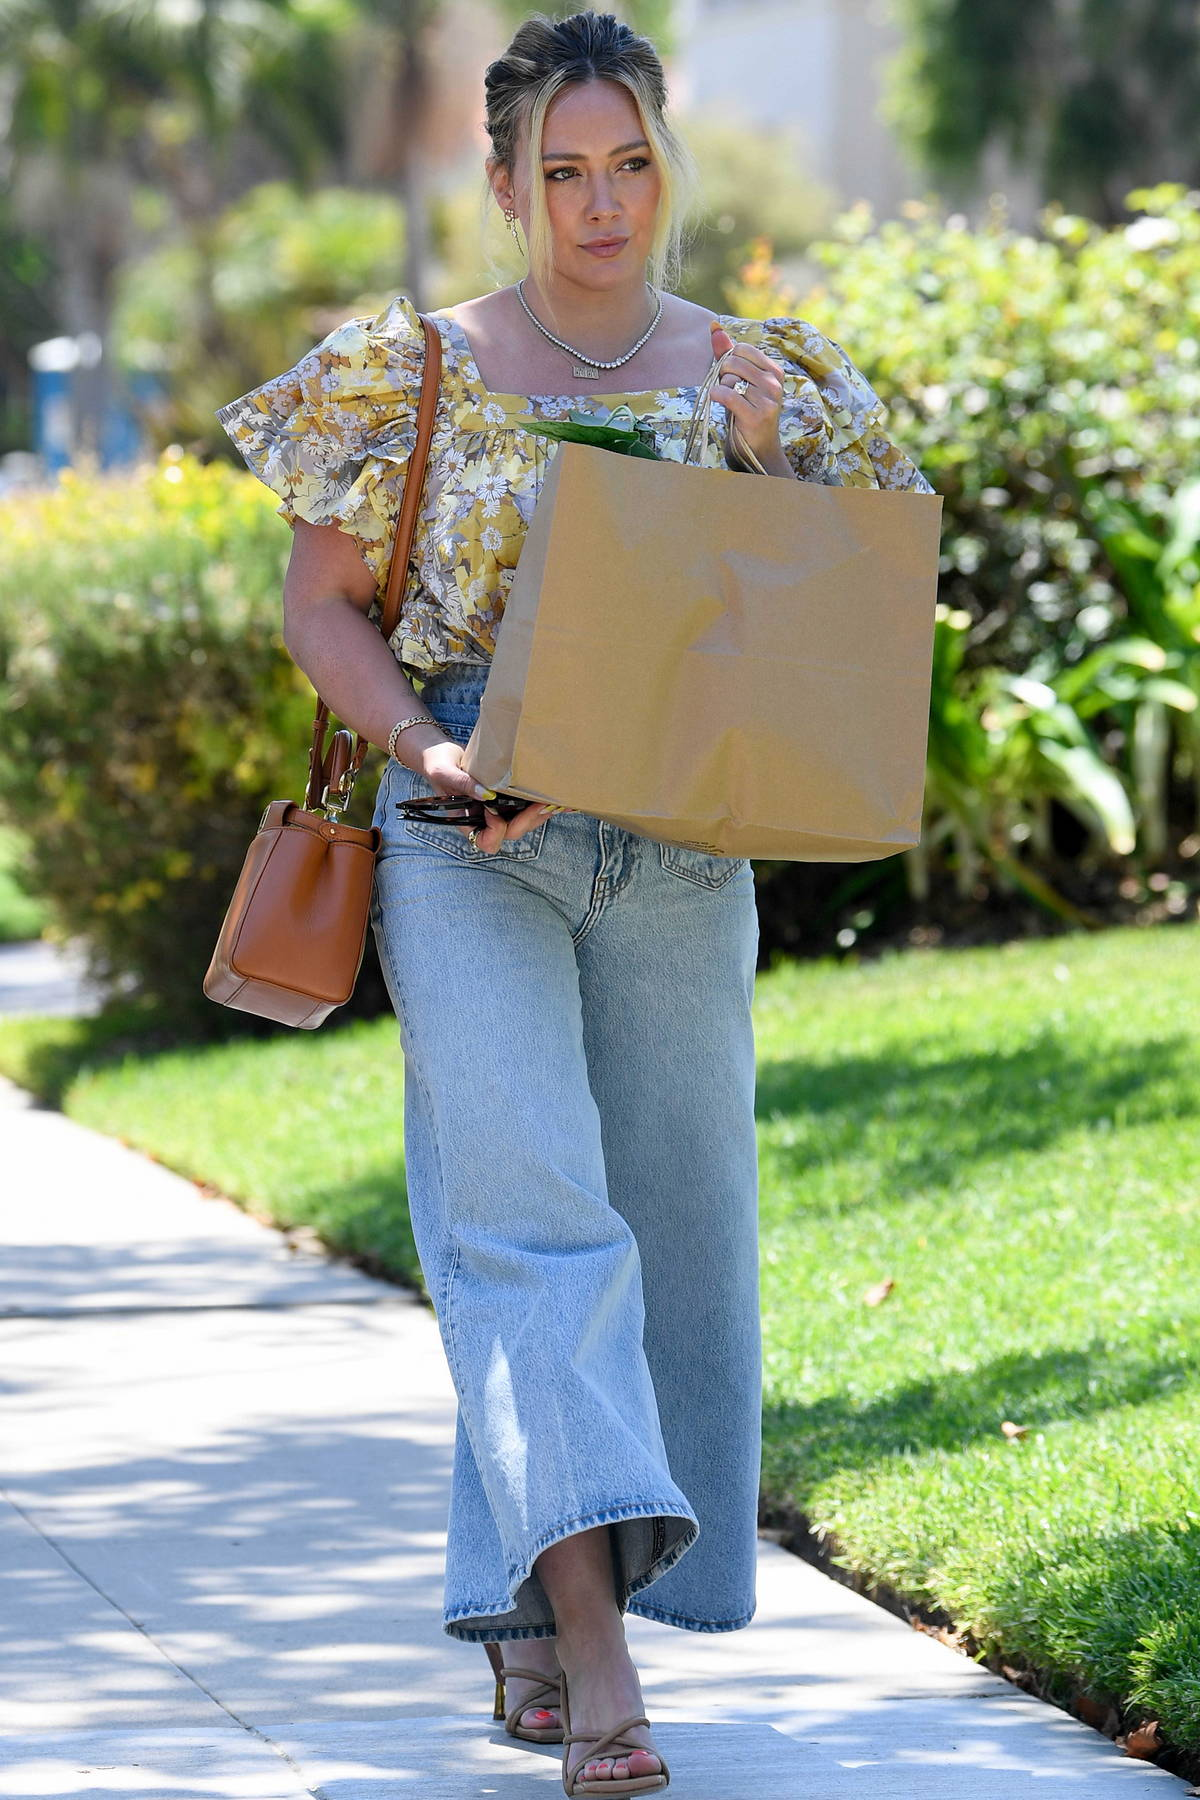 Hilary Duff looks fashionable in a floral top and flared jeans as she steps out to shop in Los Angeles